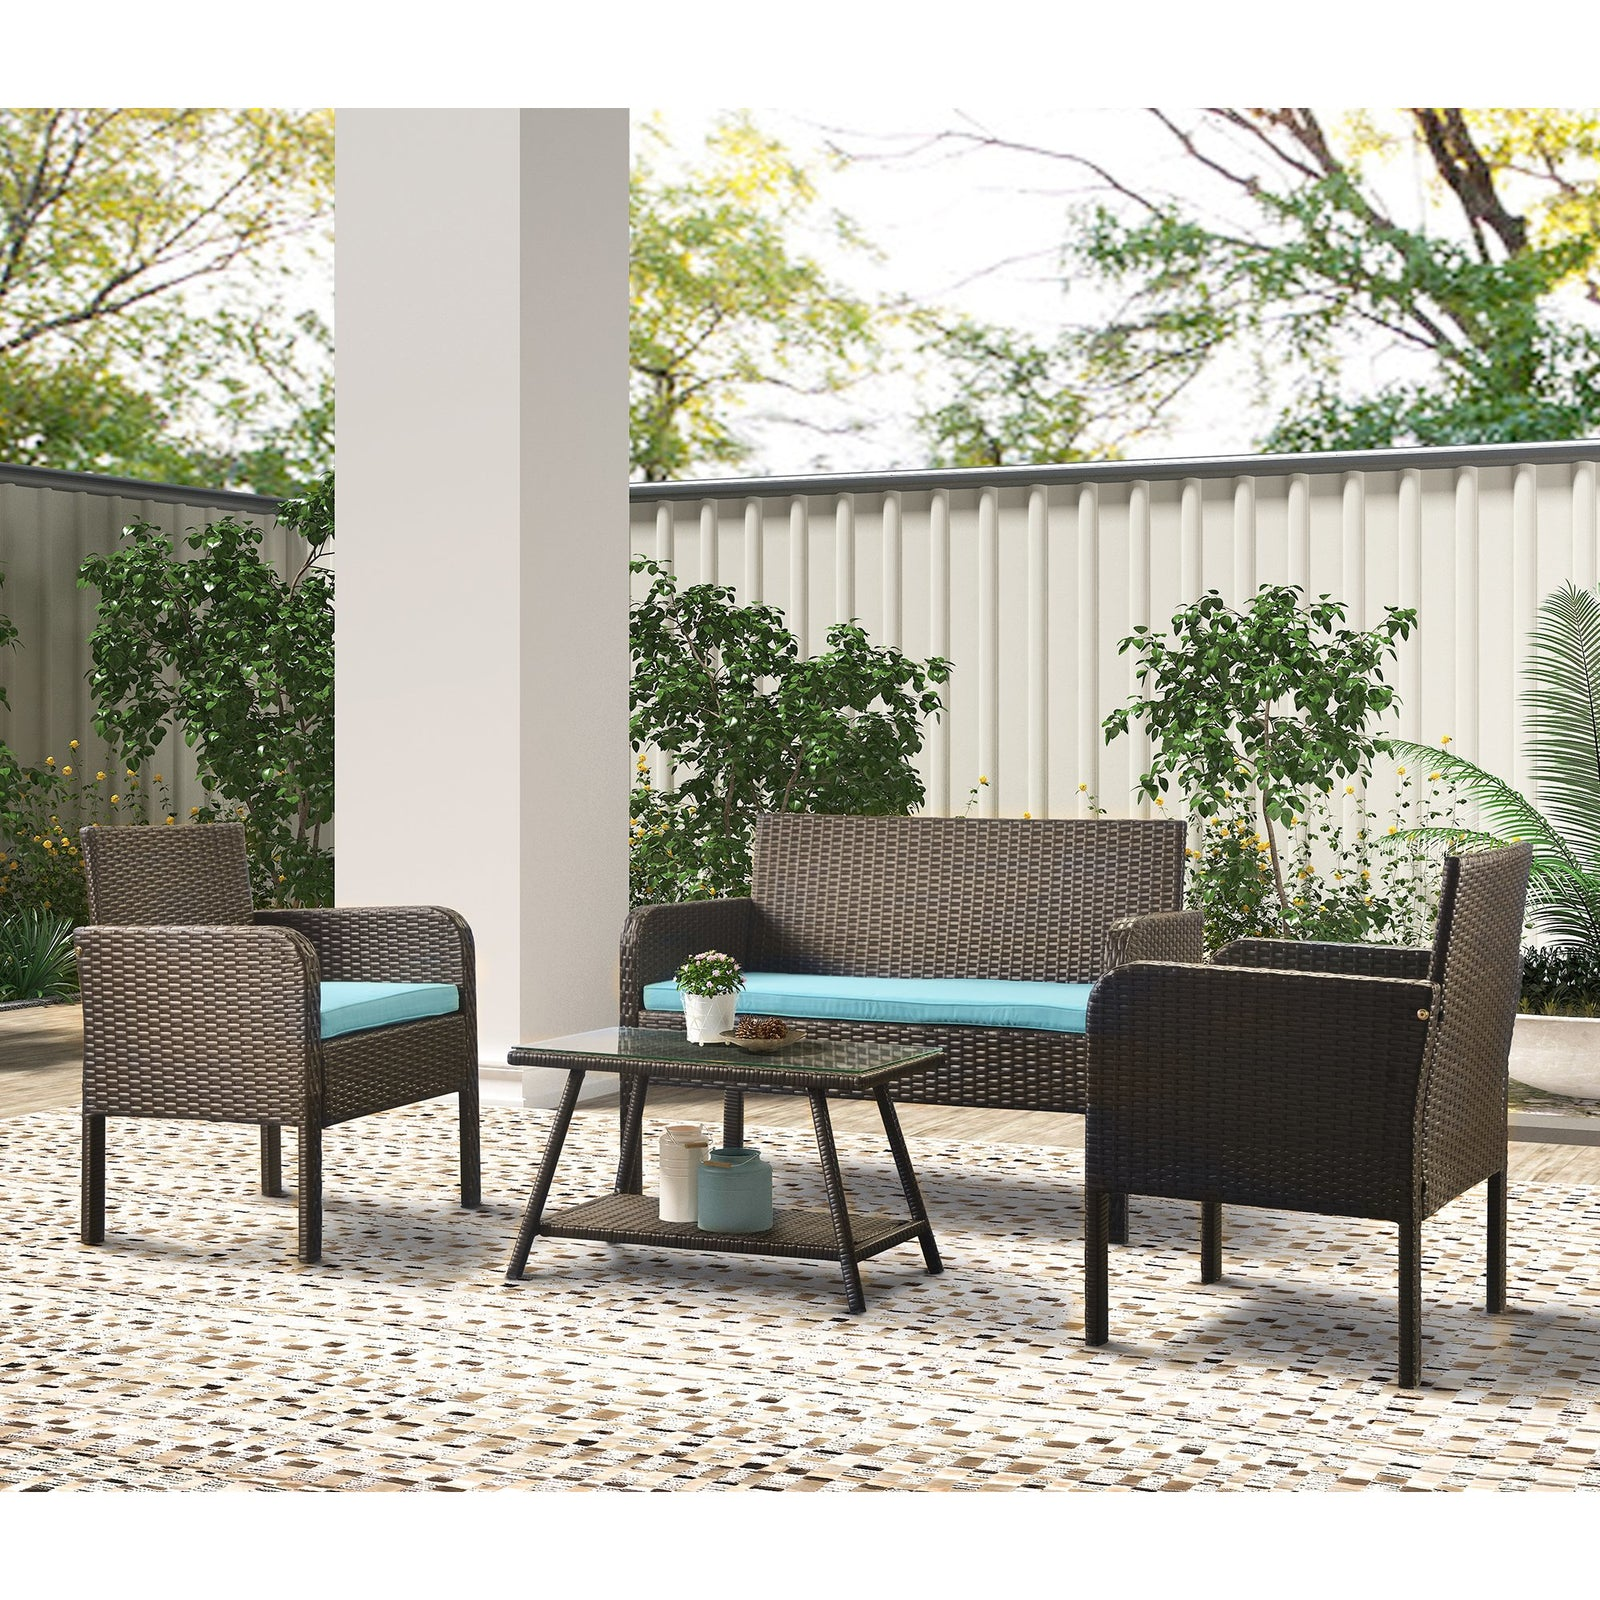 4 Counts - Rattan Sofa Seating Group with Cushions, Outdoor Rattan sofa - Blue